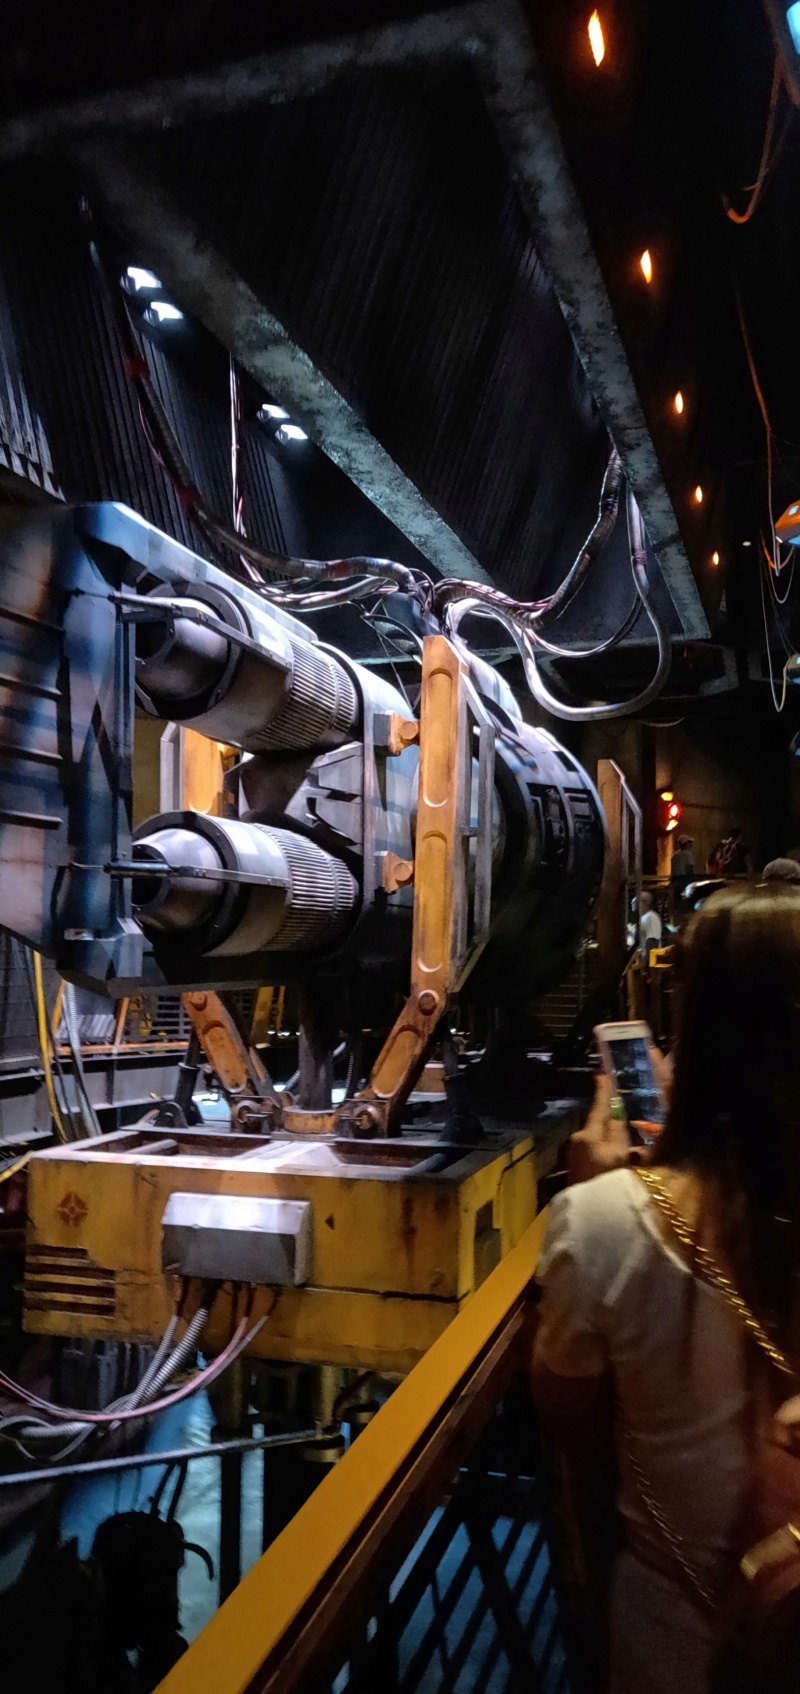 [Disney's Hollywood Studios] Star Wars: Galaxy's Edge (29 août 2019) - Page 18 Img20141